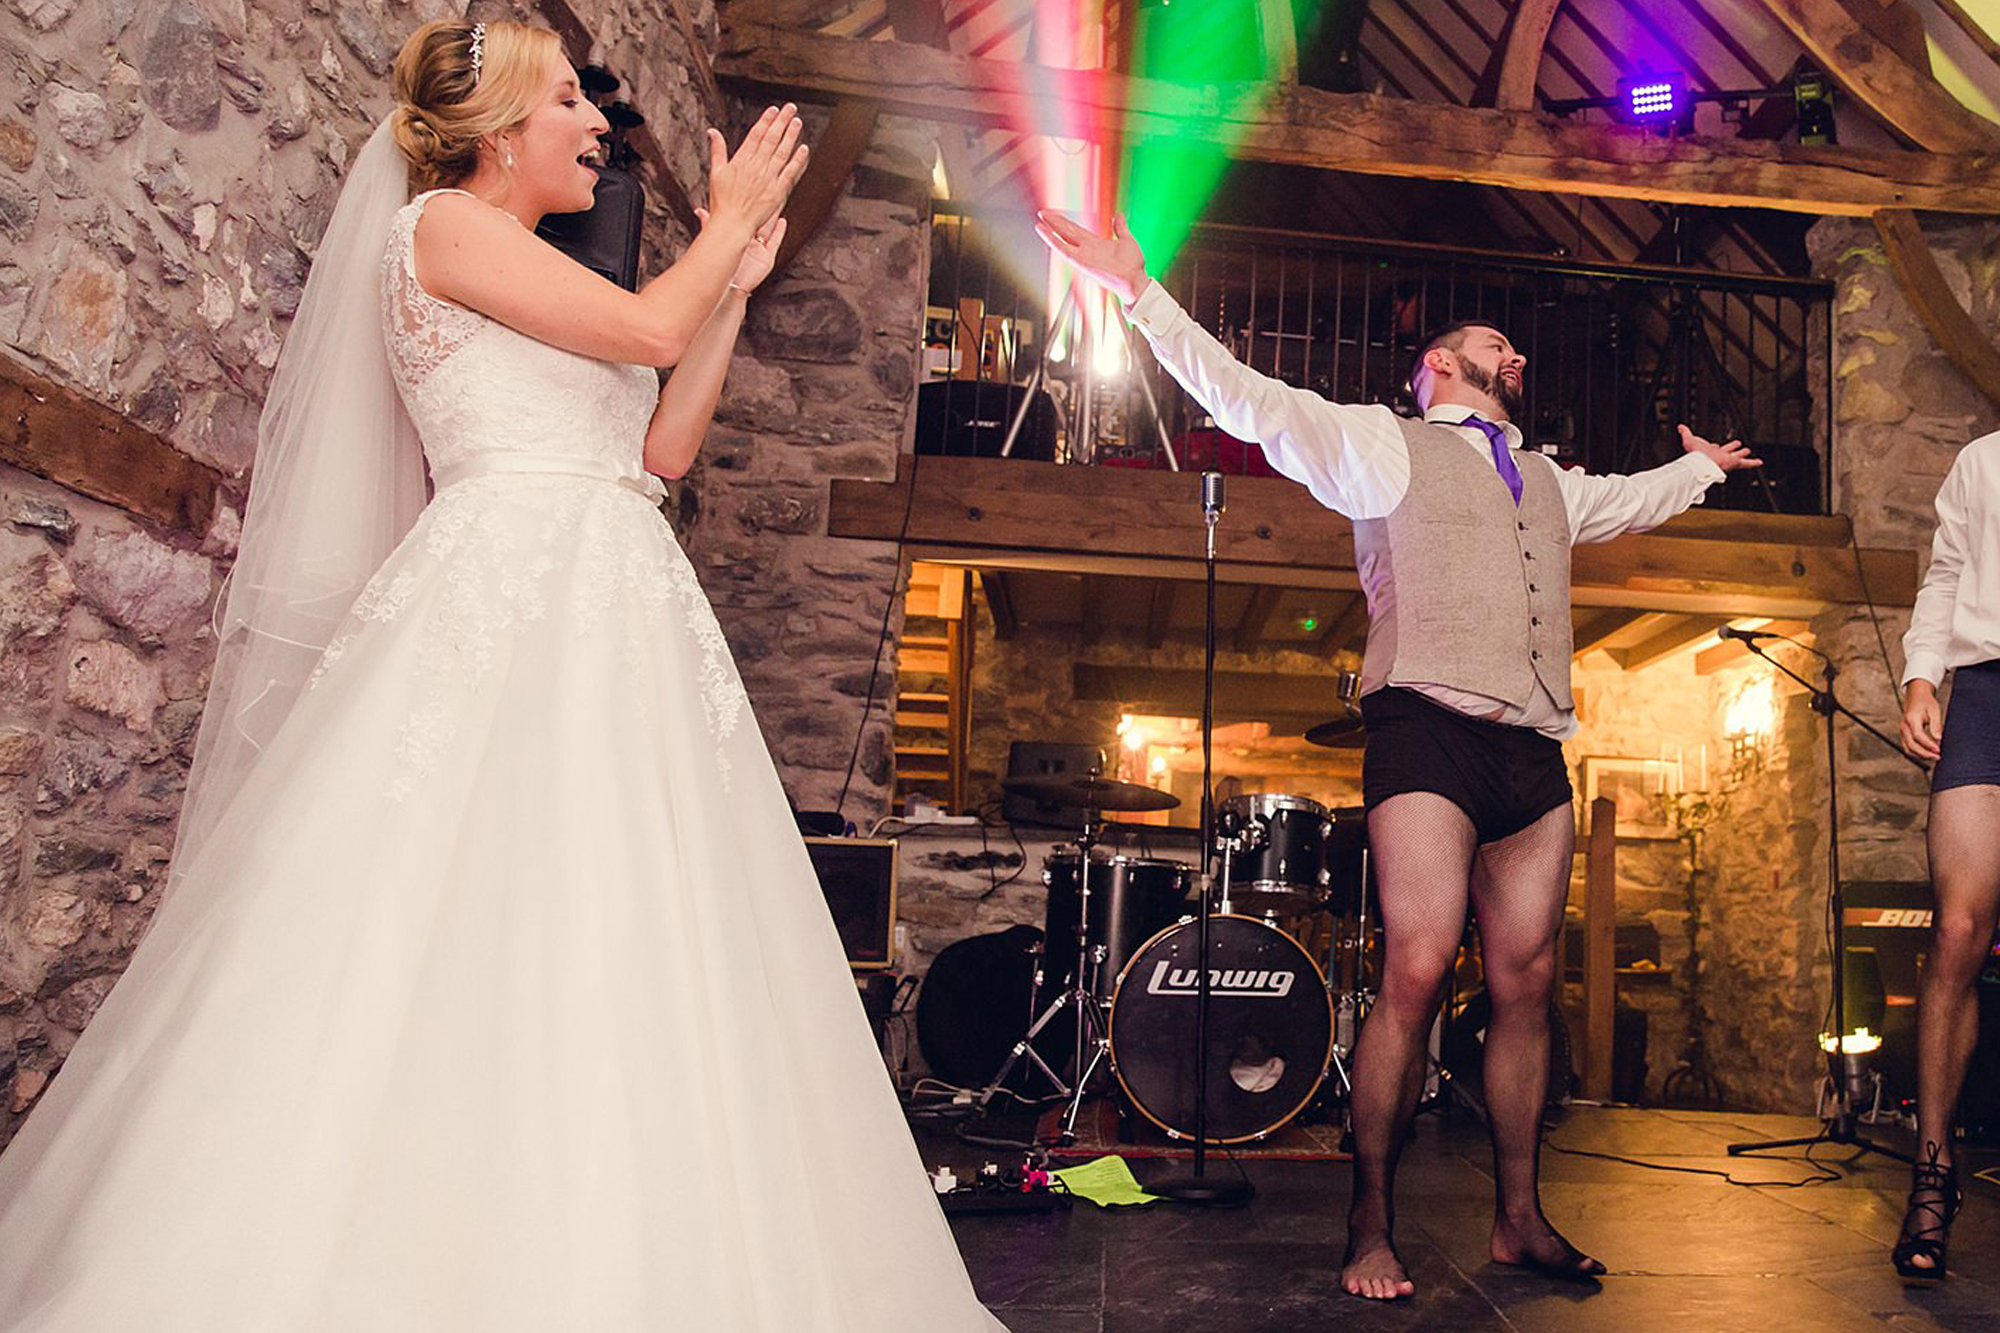 A fun wedding dance to Rocky Horror in fishnets